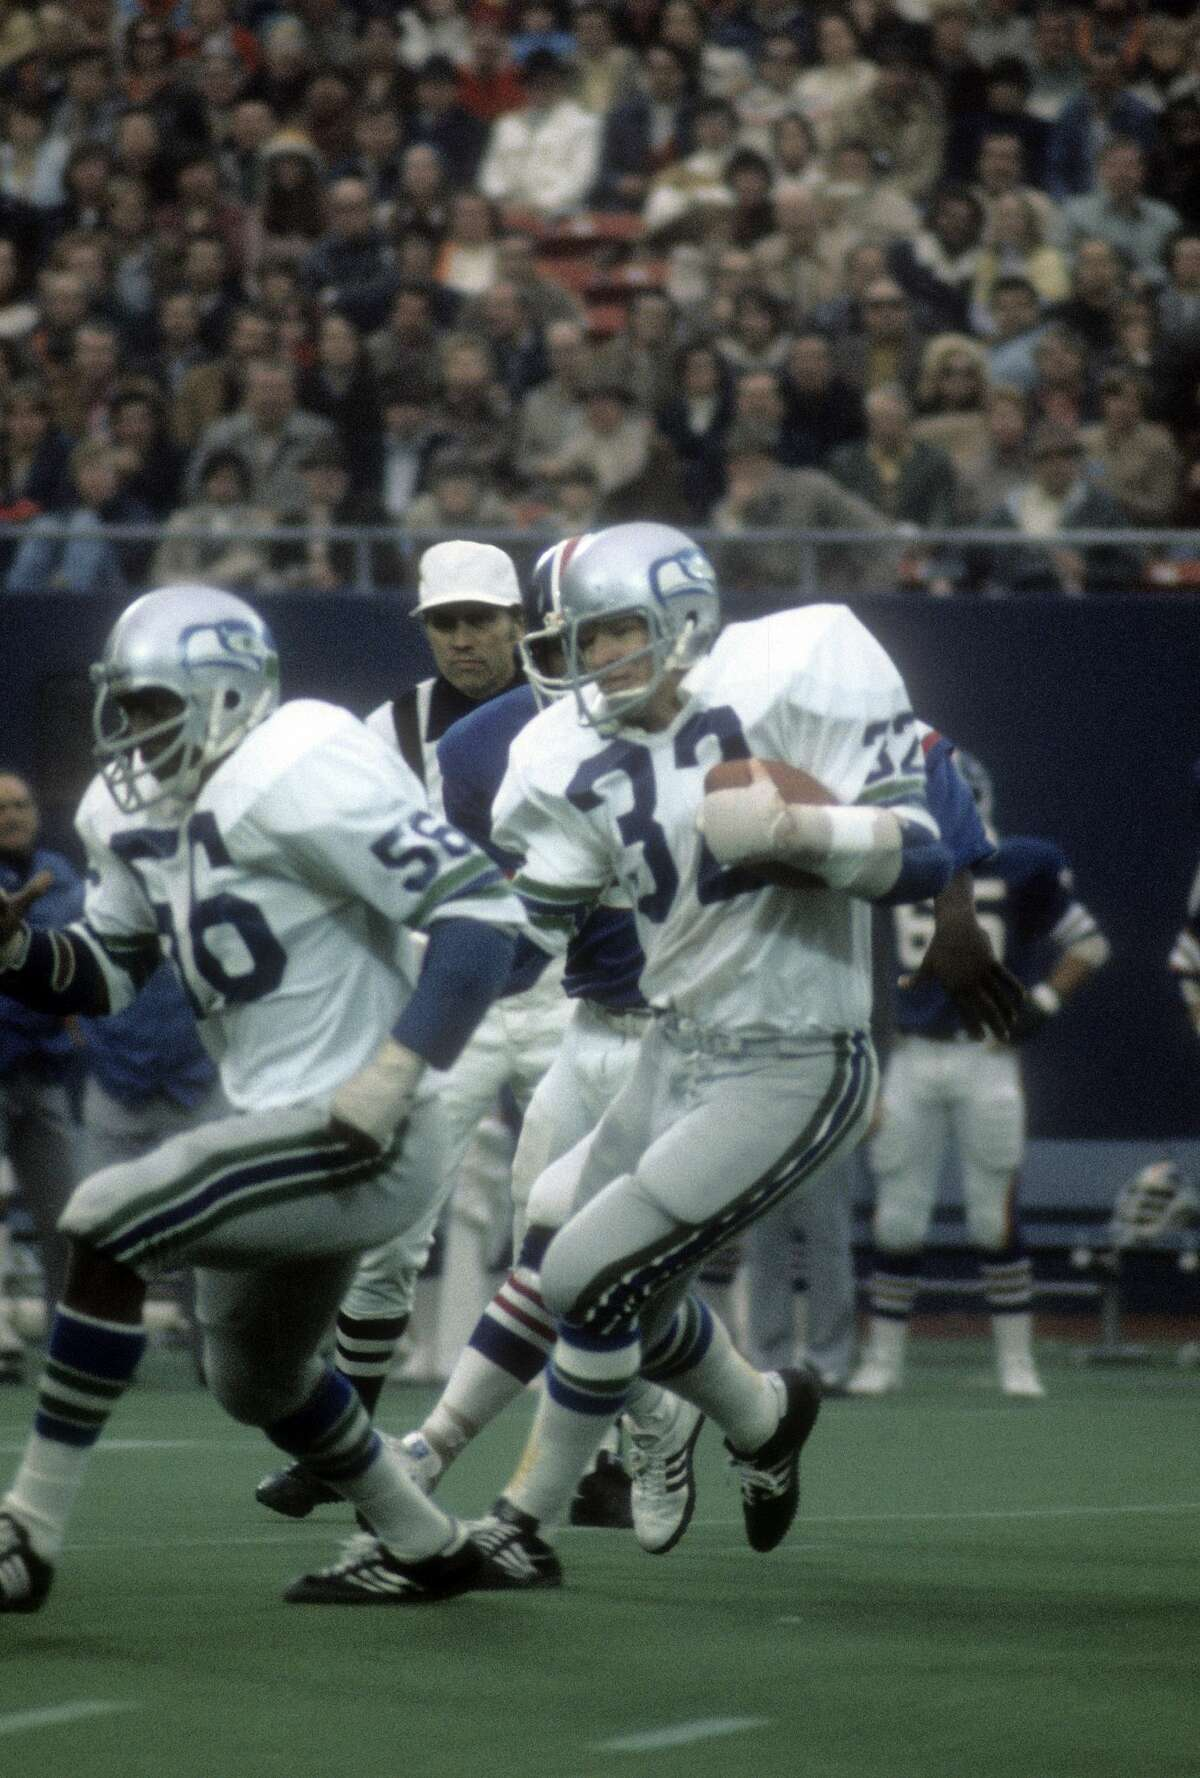 Curtis joined Seattle through the expansion draft in 1976, what turned out to be his only year with the team. The first defensive captain of the Seahawks, Curtis started all 14 games for the team that season at right linebacker.